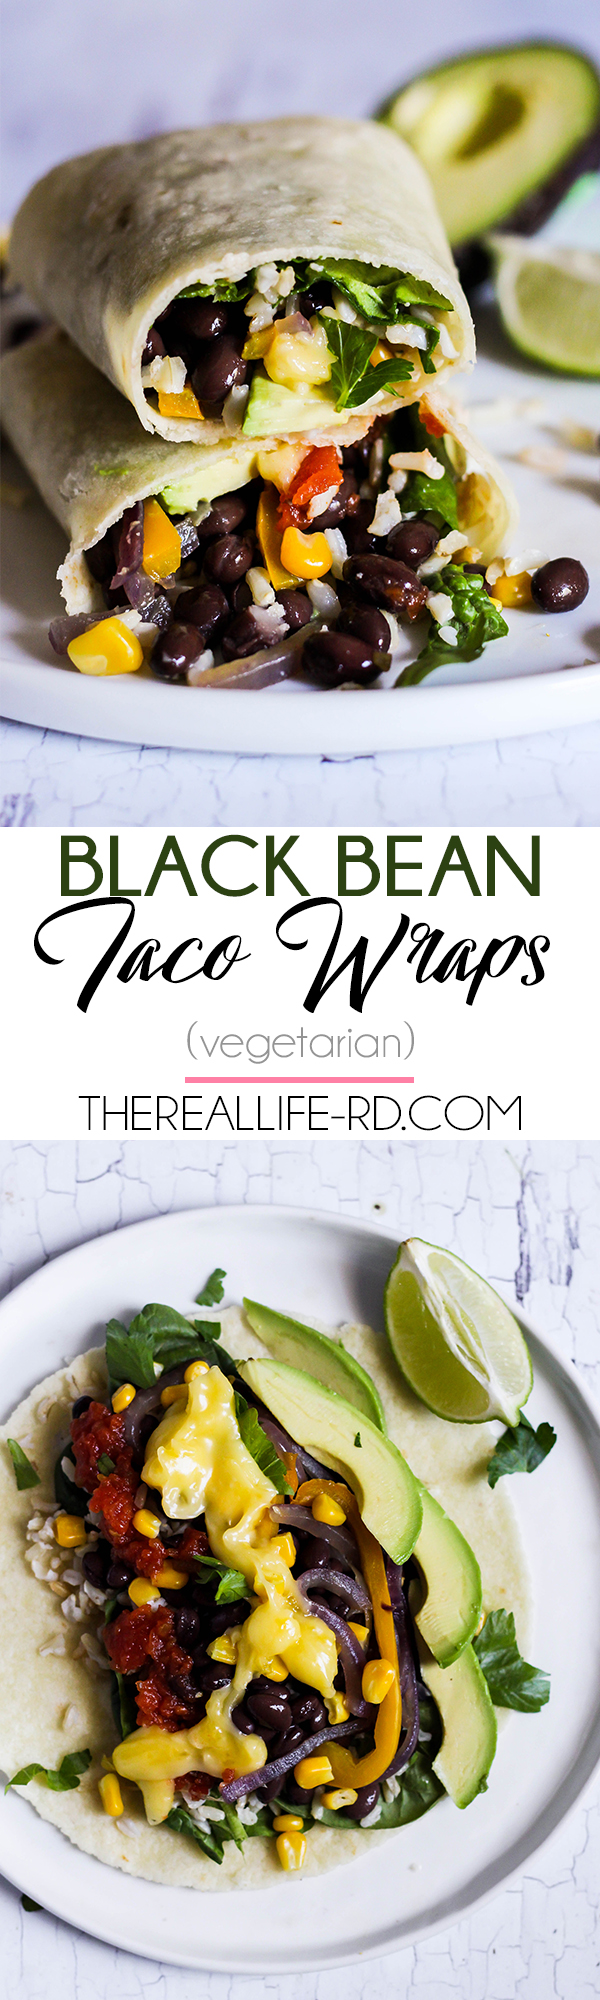 Easy black bean taco wraps that are perfect for packing for lunch! | The Real Life RD